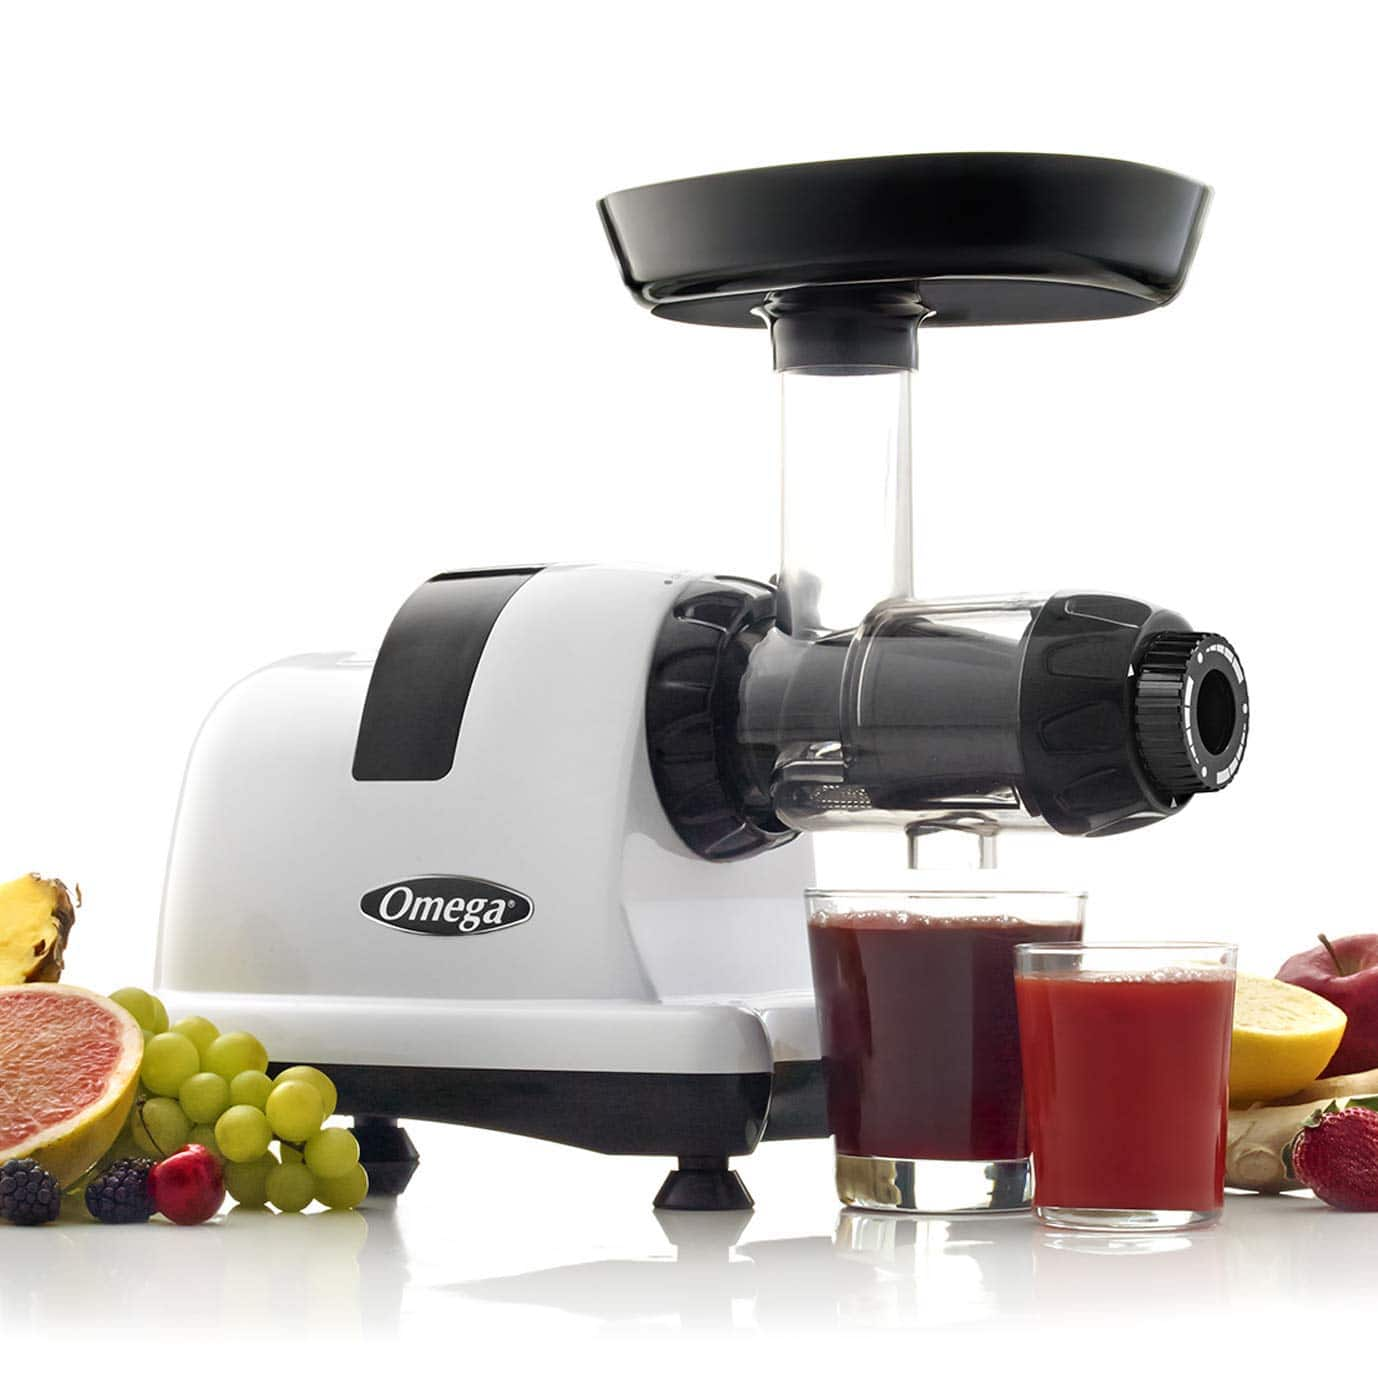 Omega J8006 Nutrition Center Quiet Dual-Stage Slow Speed Masticating Juicer (Open Box) $169.99